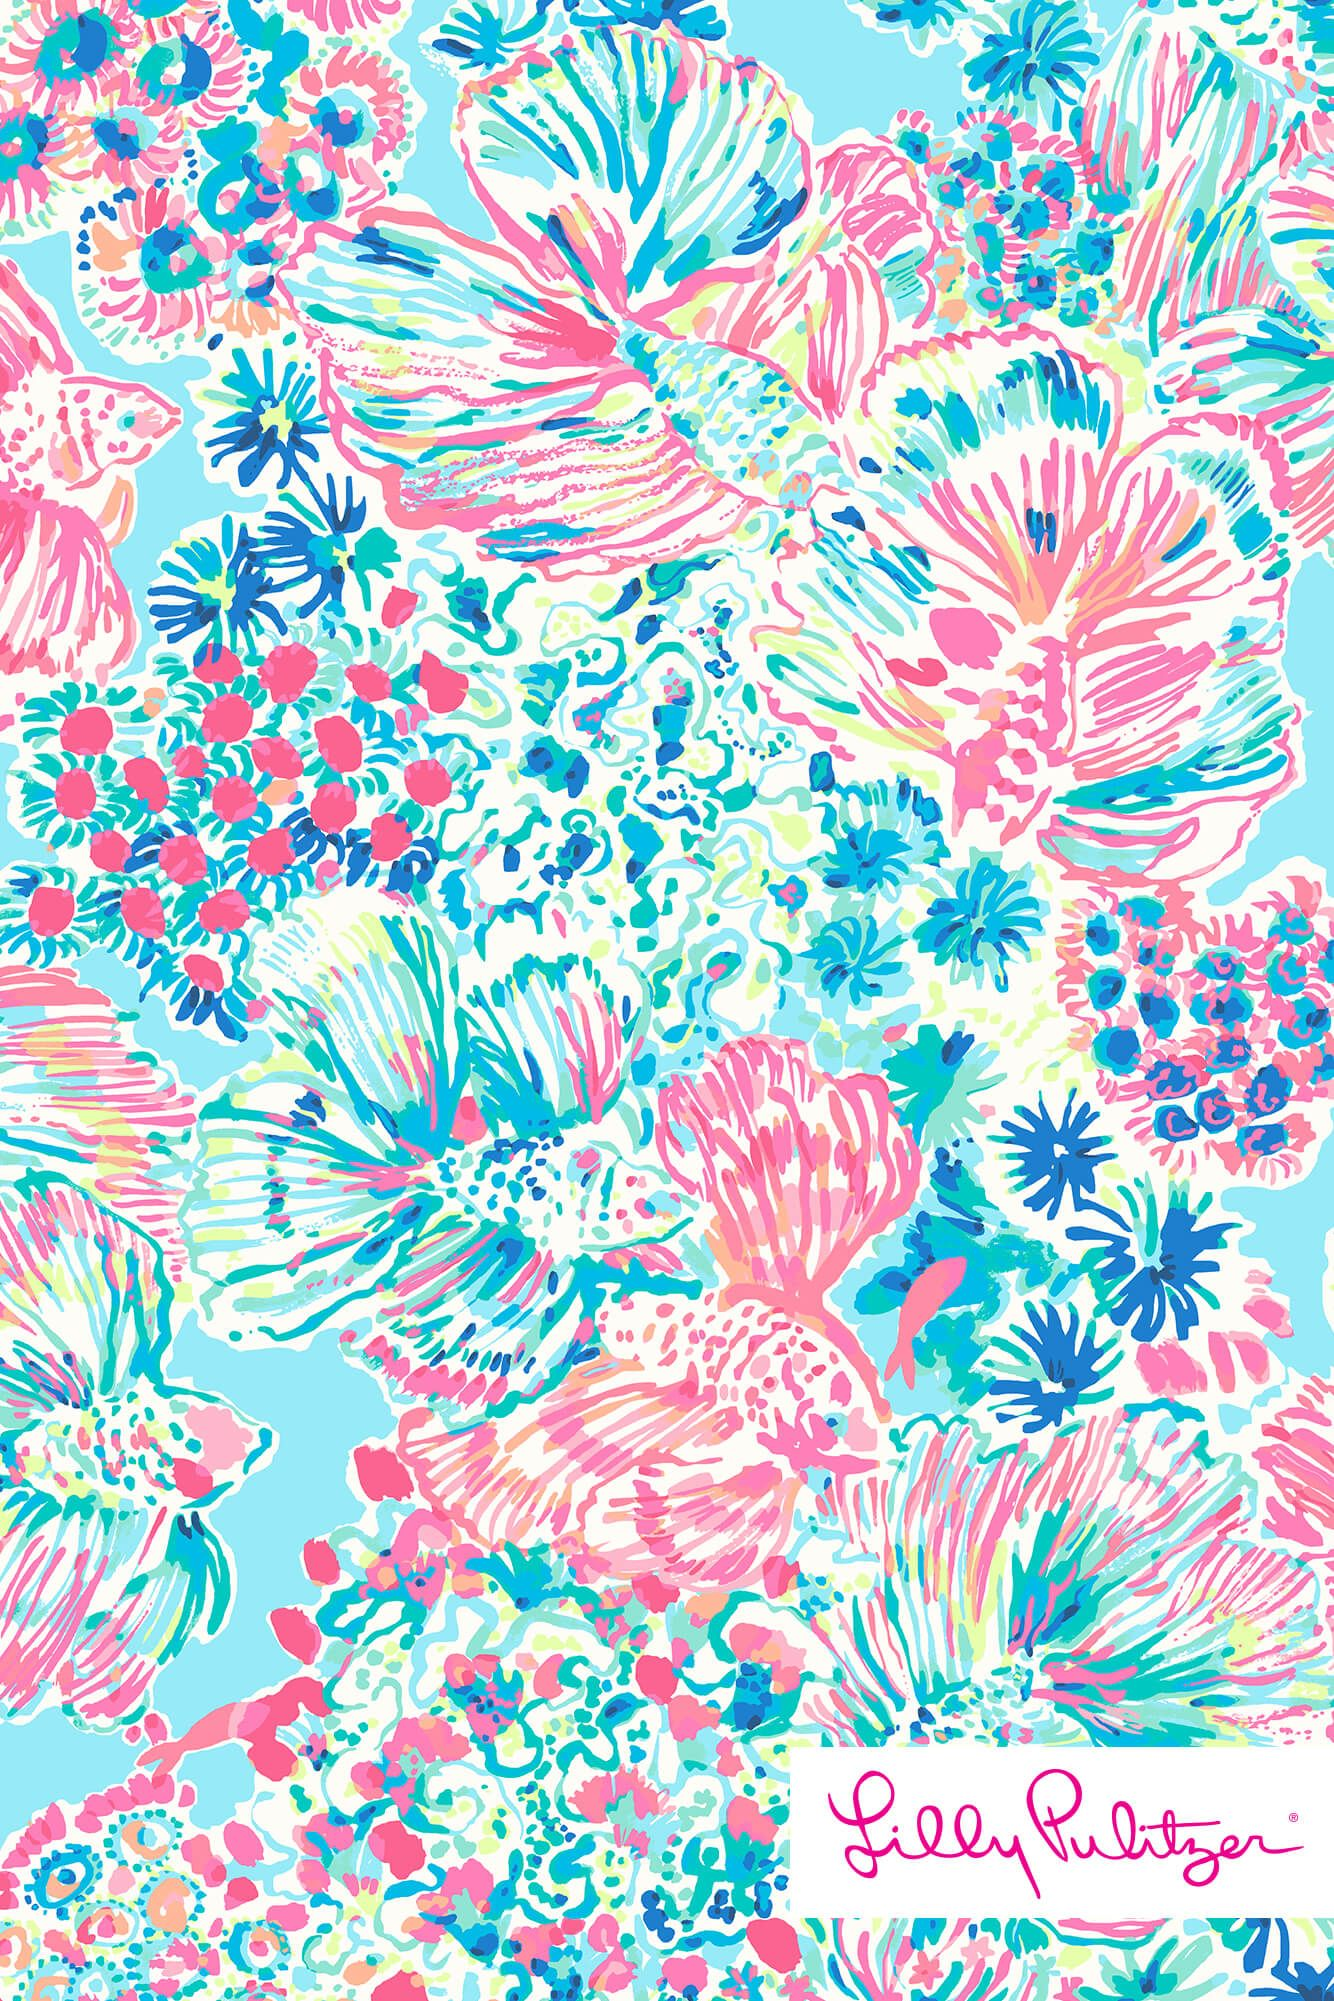 Pin By Nikki George On Lilly Lilly Pulitzer Iphone Wallpaper Lily Pulitzer Wallpaper Pretty Wallpapers